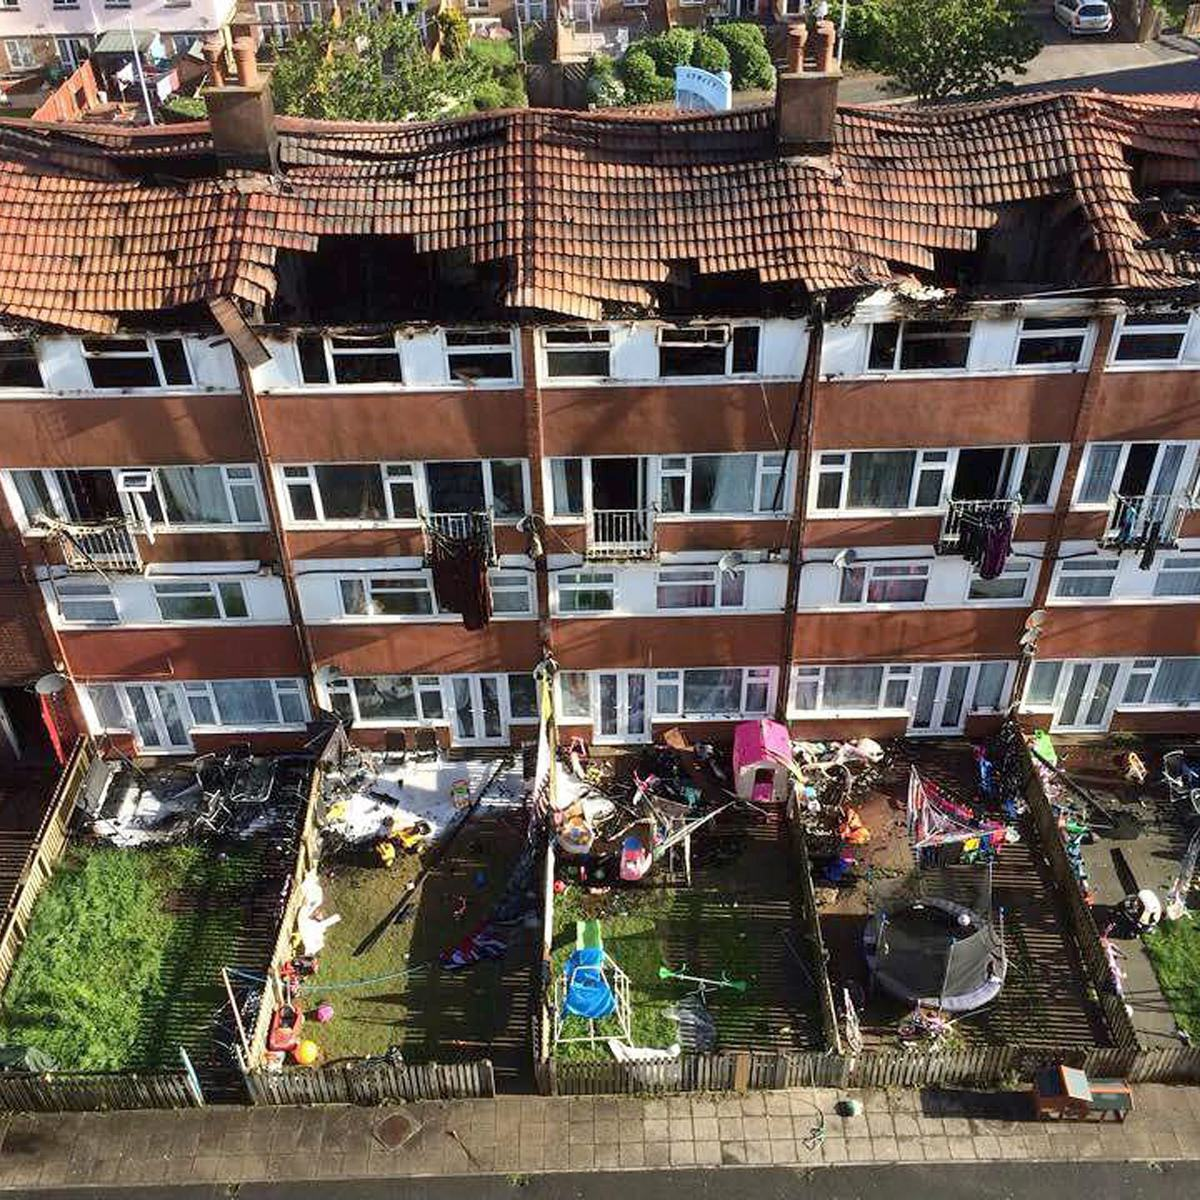 UNILAD SWNS FLAT FIRE 0267613 Boy Tries To Recreate Science Experiment, Burns Down Block Of Flats Causing £3m Damage